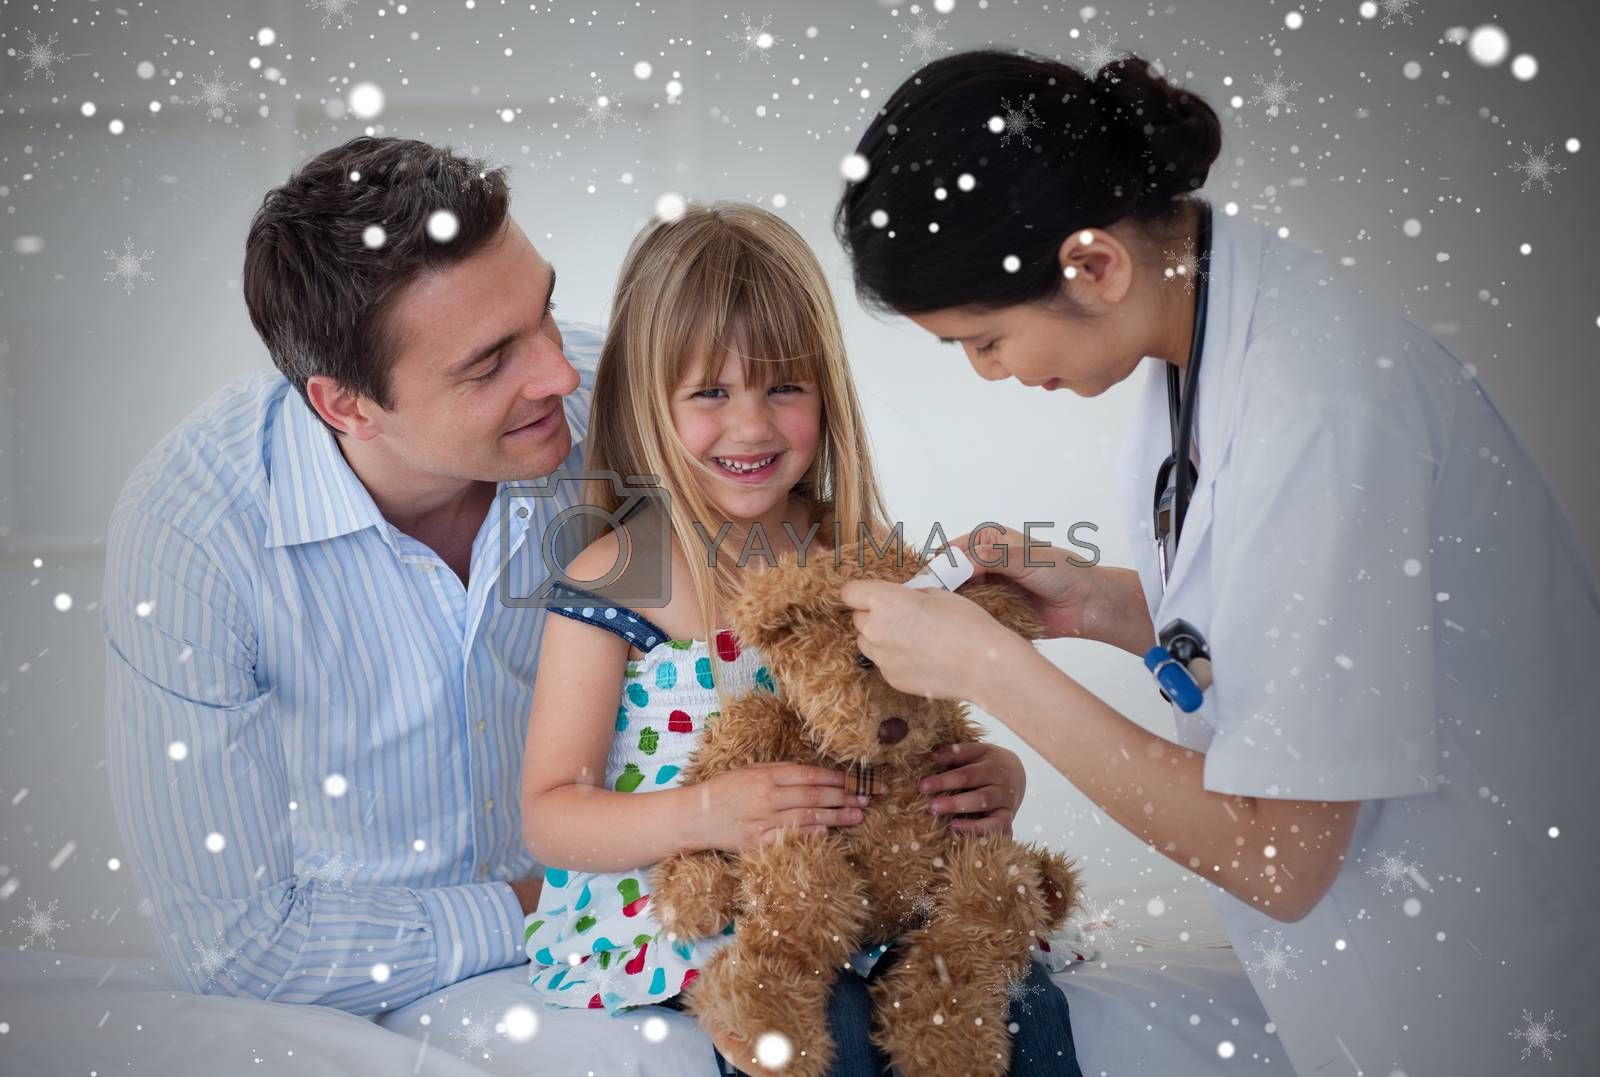 Smiling patient examining a teddy bear with a doctor against snow